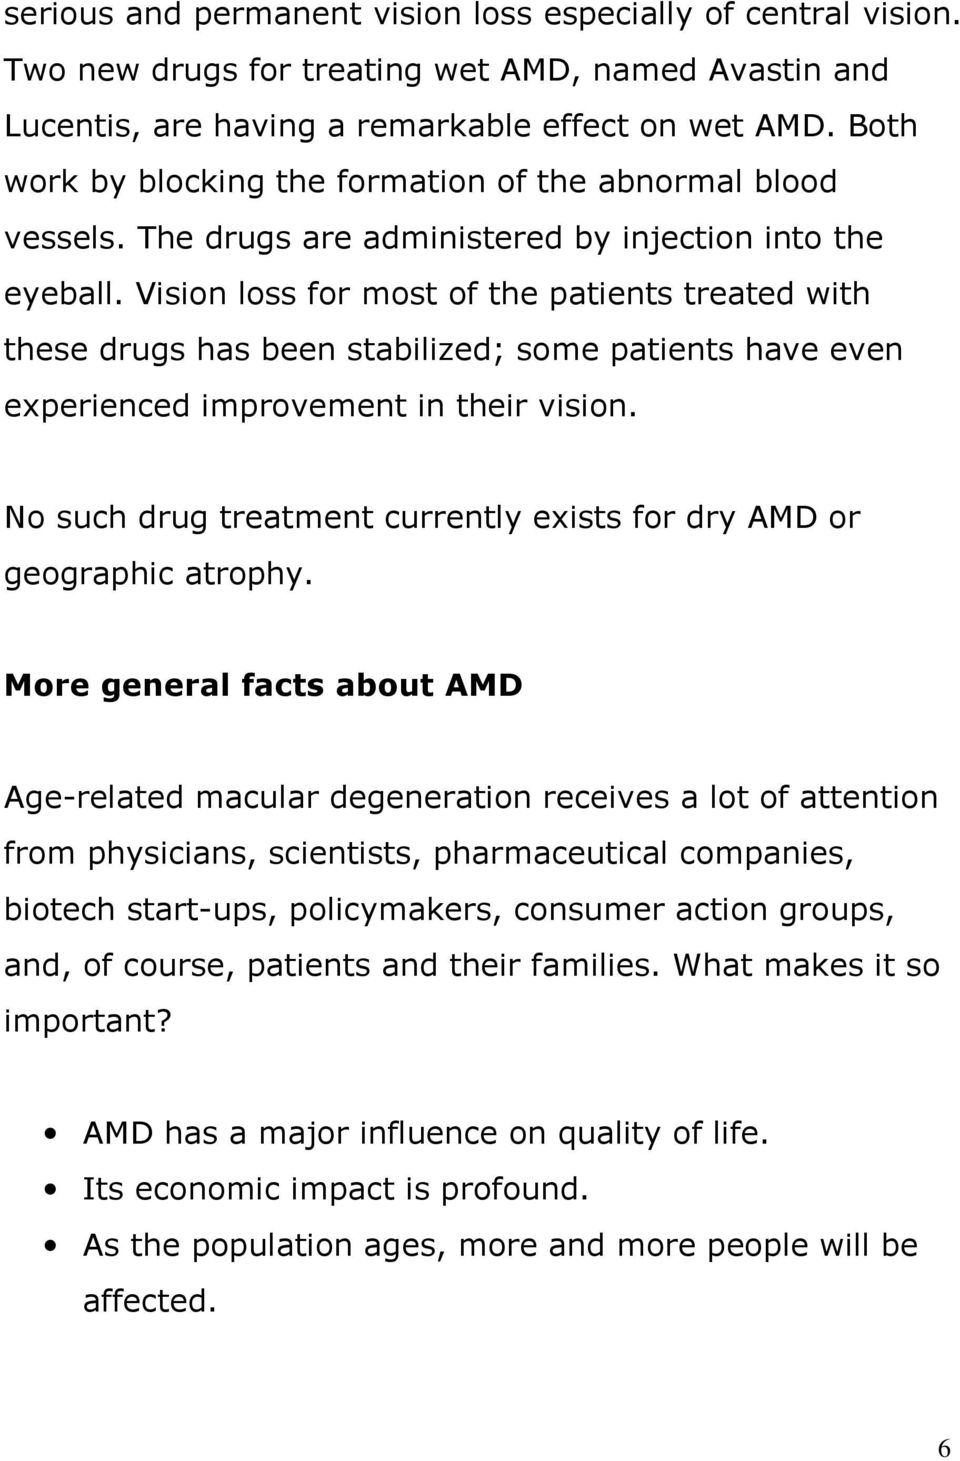 Vision loss for most of the patients treated with these drugs has been stabilized; some patients have even experienced improvement in their vision.